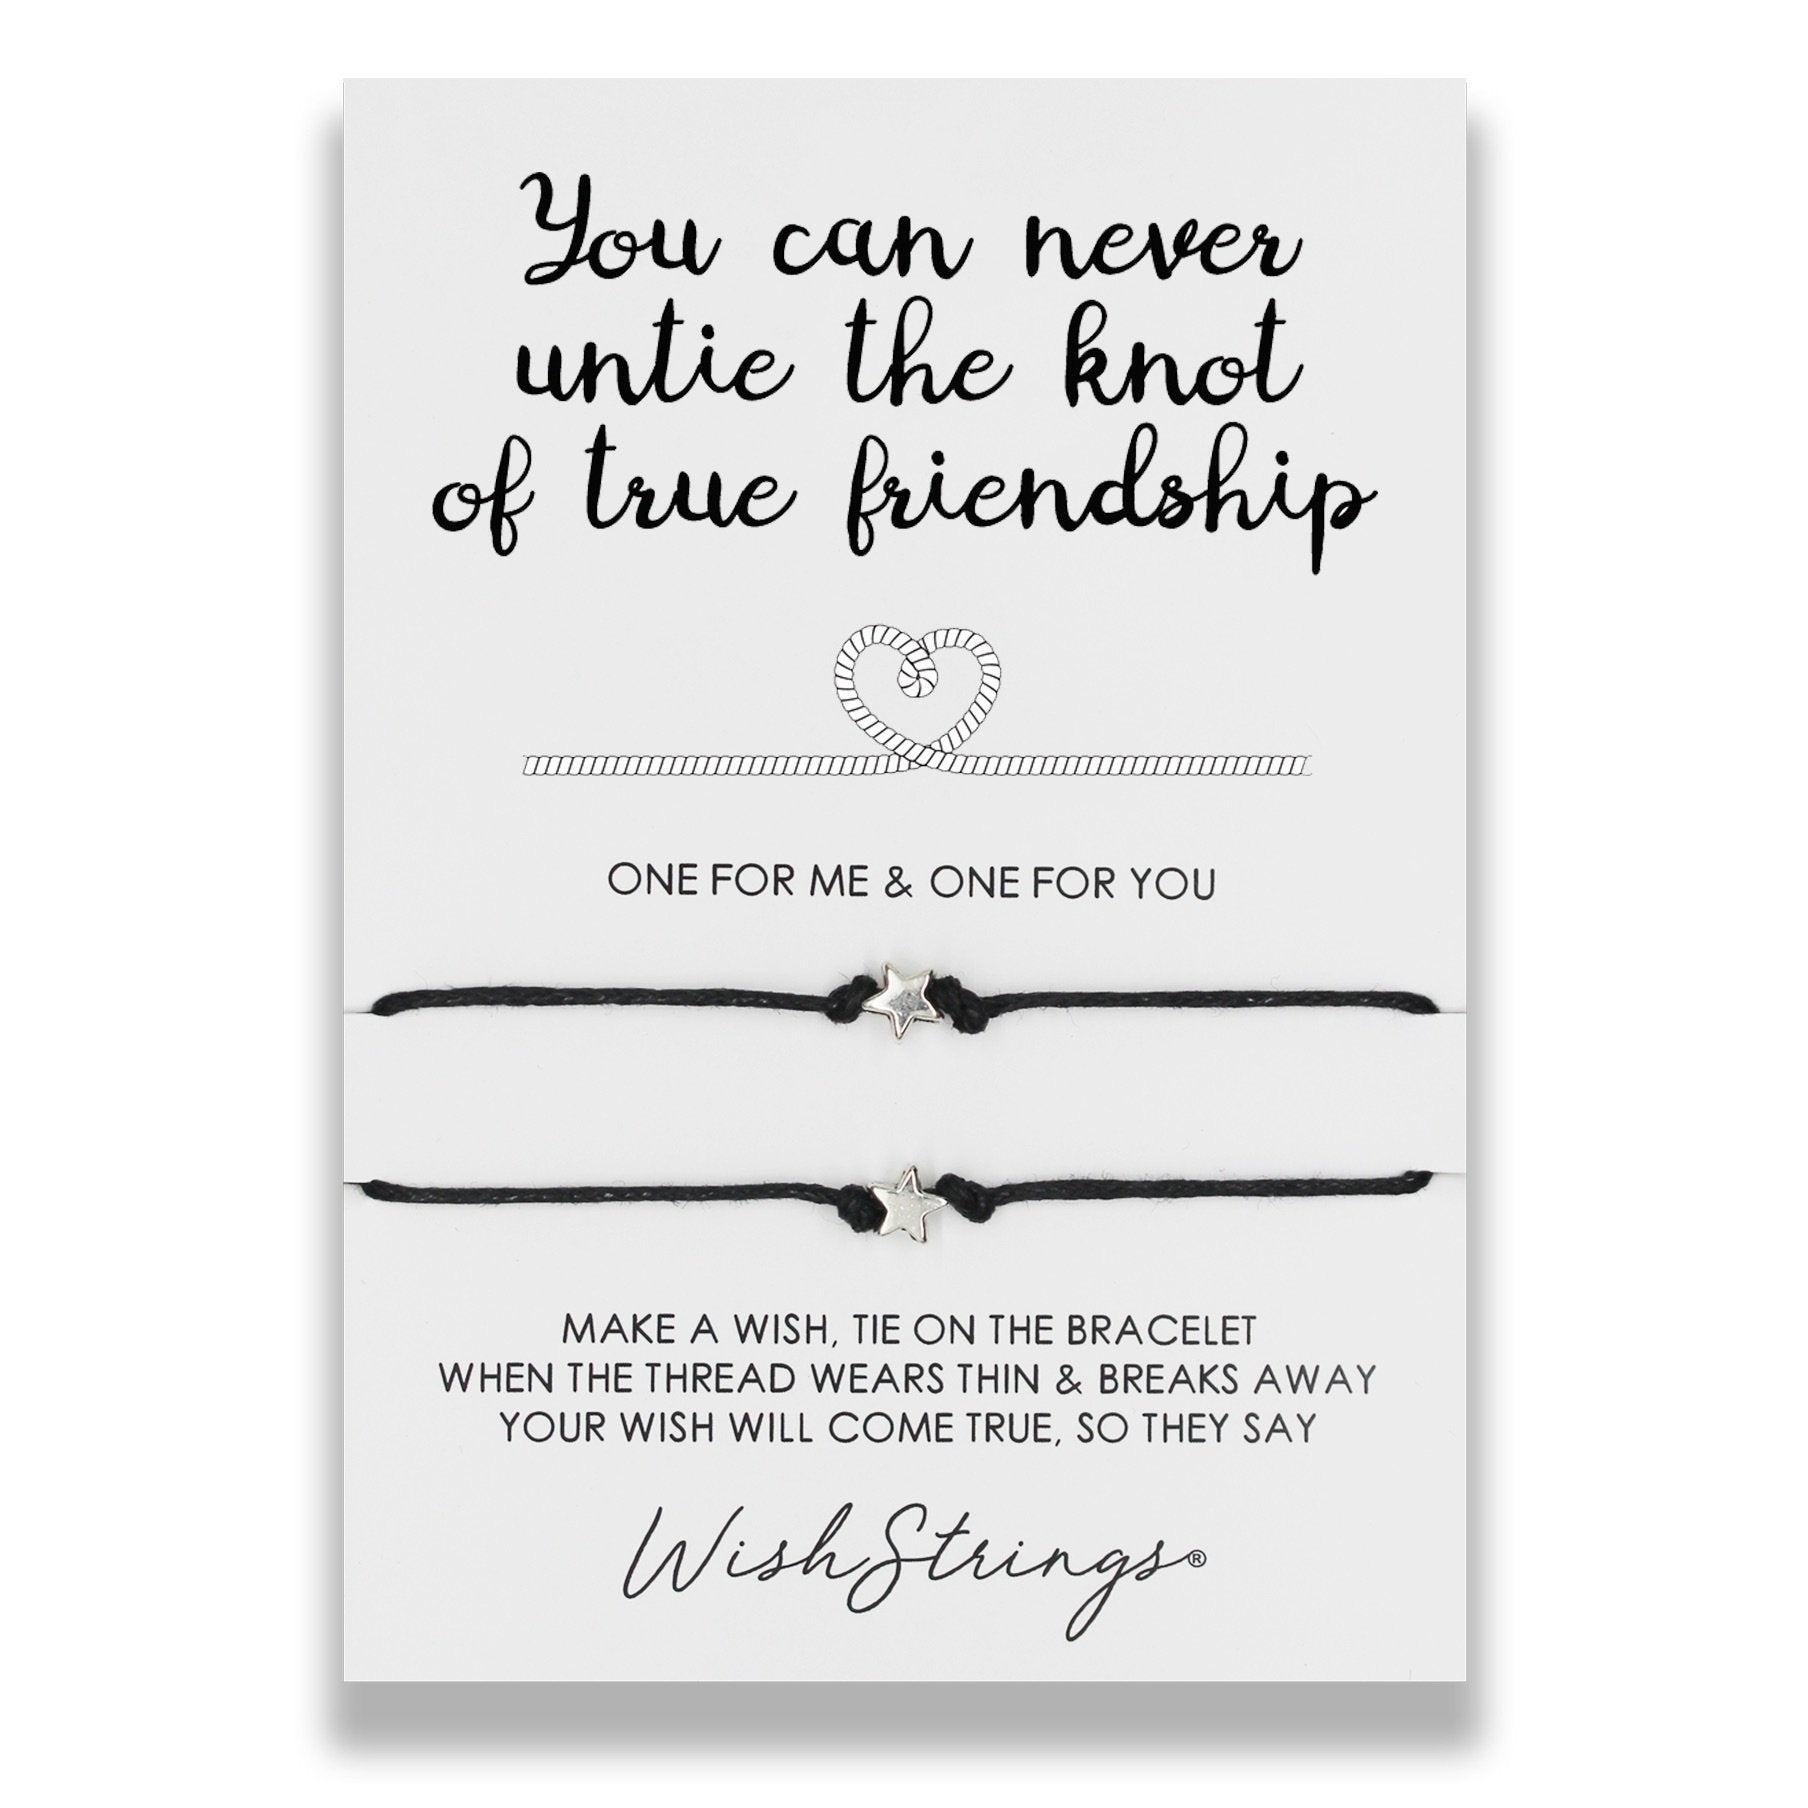 Duo Wish bracelets - you can never untie the know of true friendship